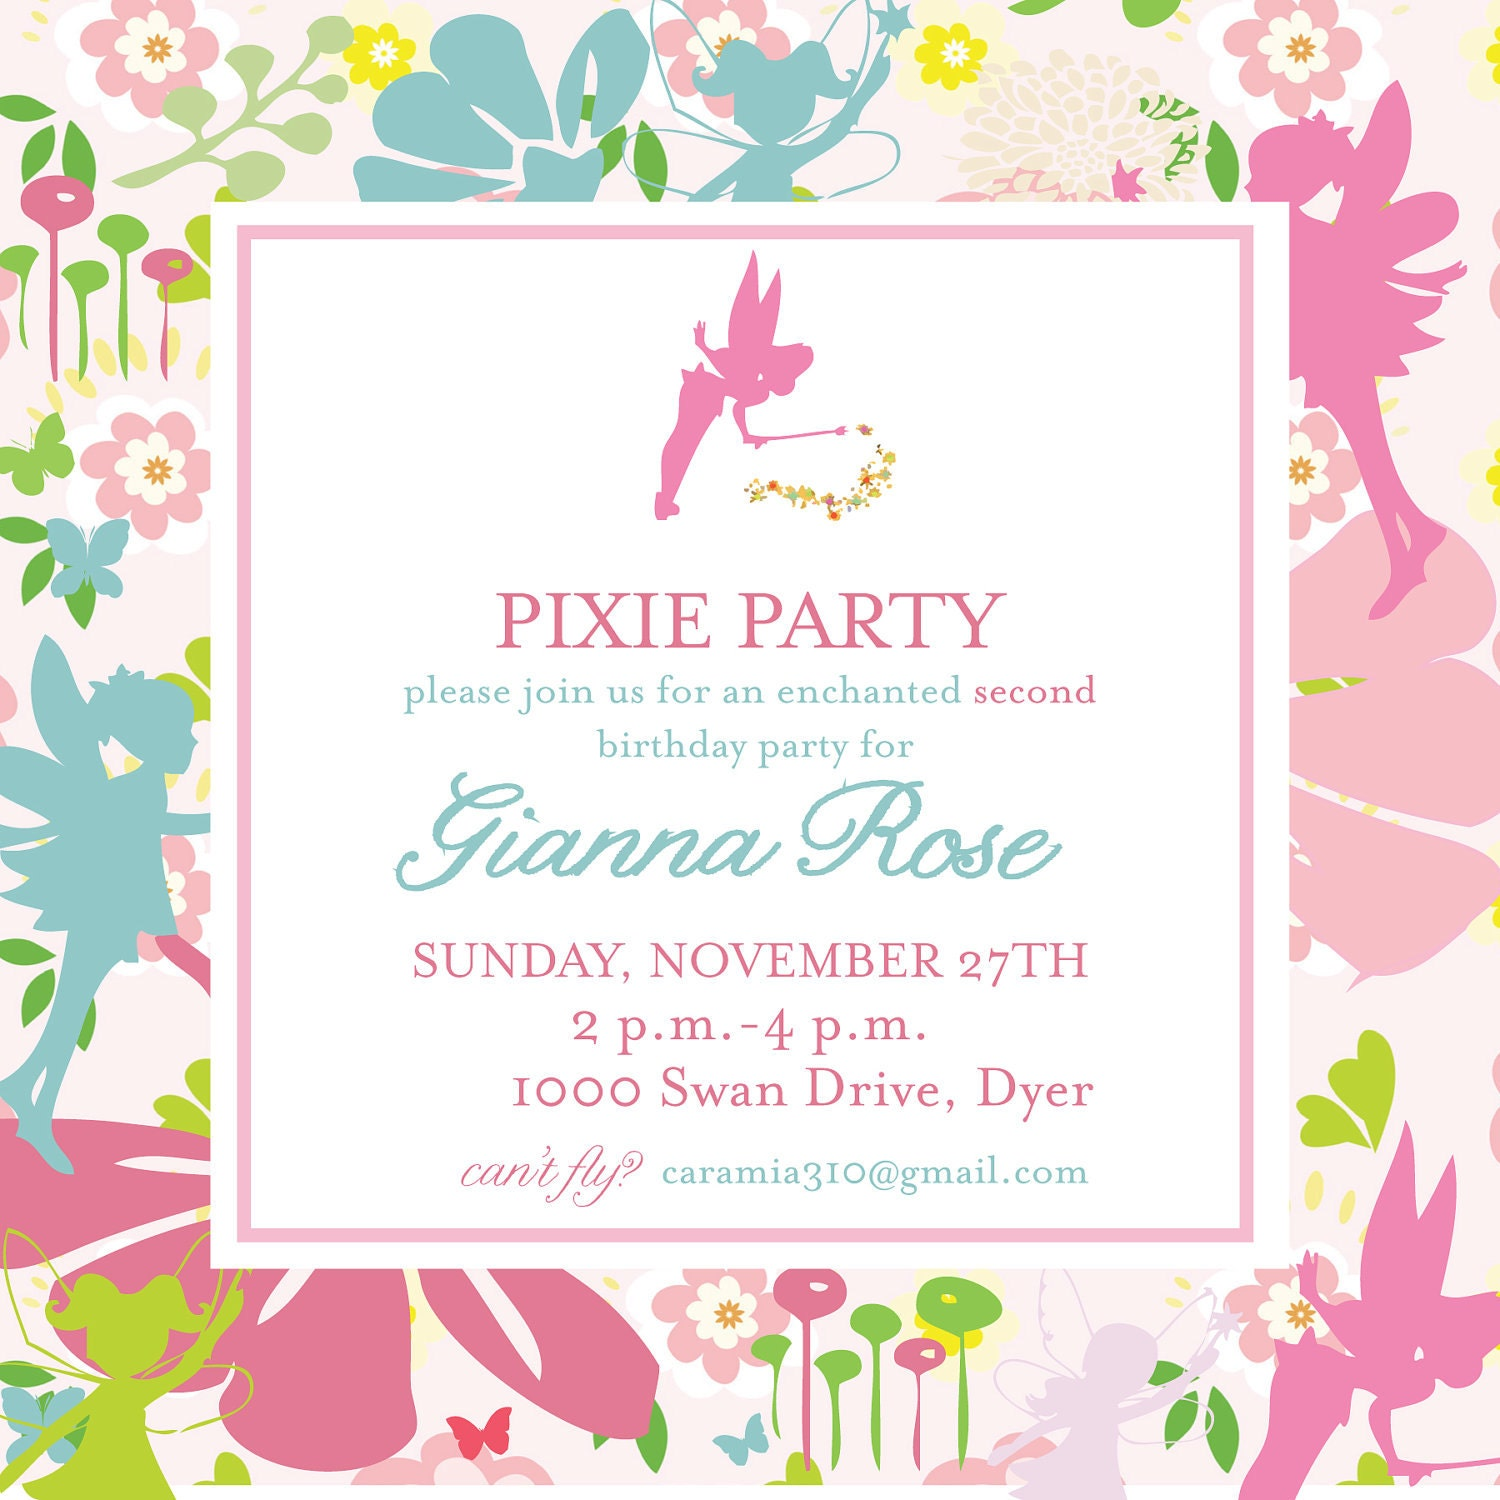 Pixies and Pirates Invitation Tinkerbell – Tinkerbell Party Invitation Ideas